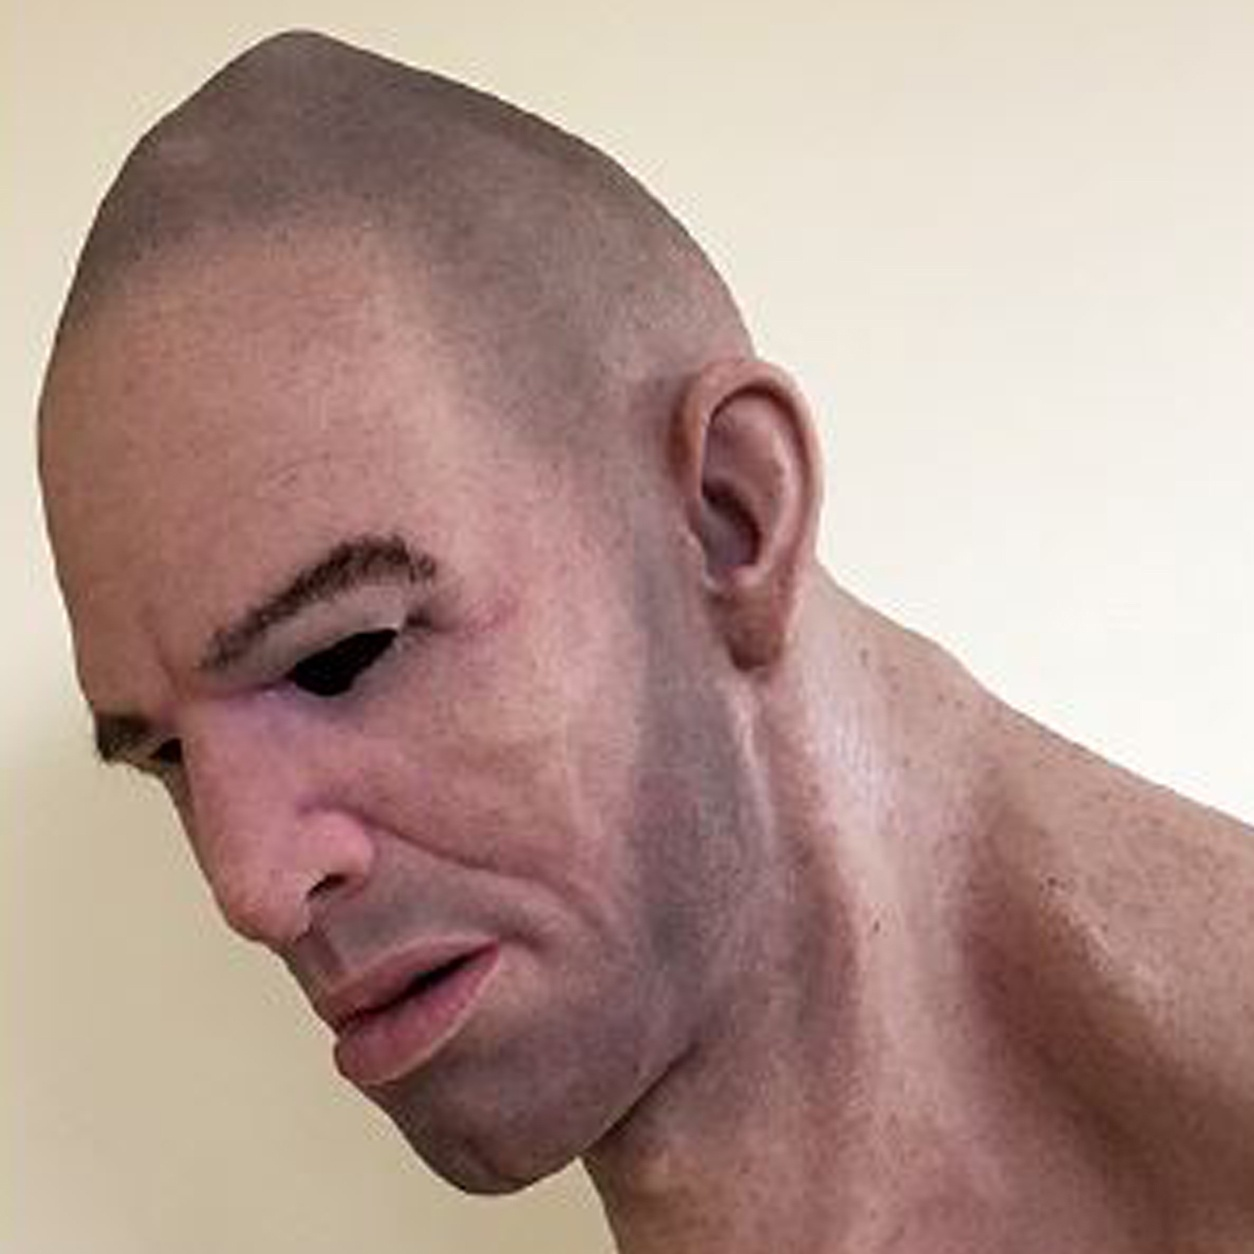 One of the hyper-realistic masks